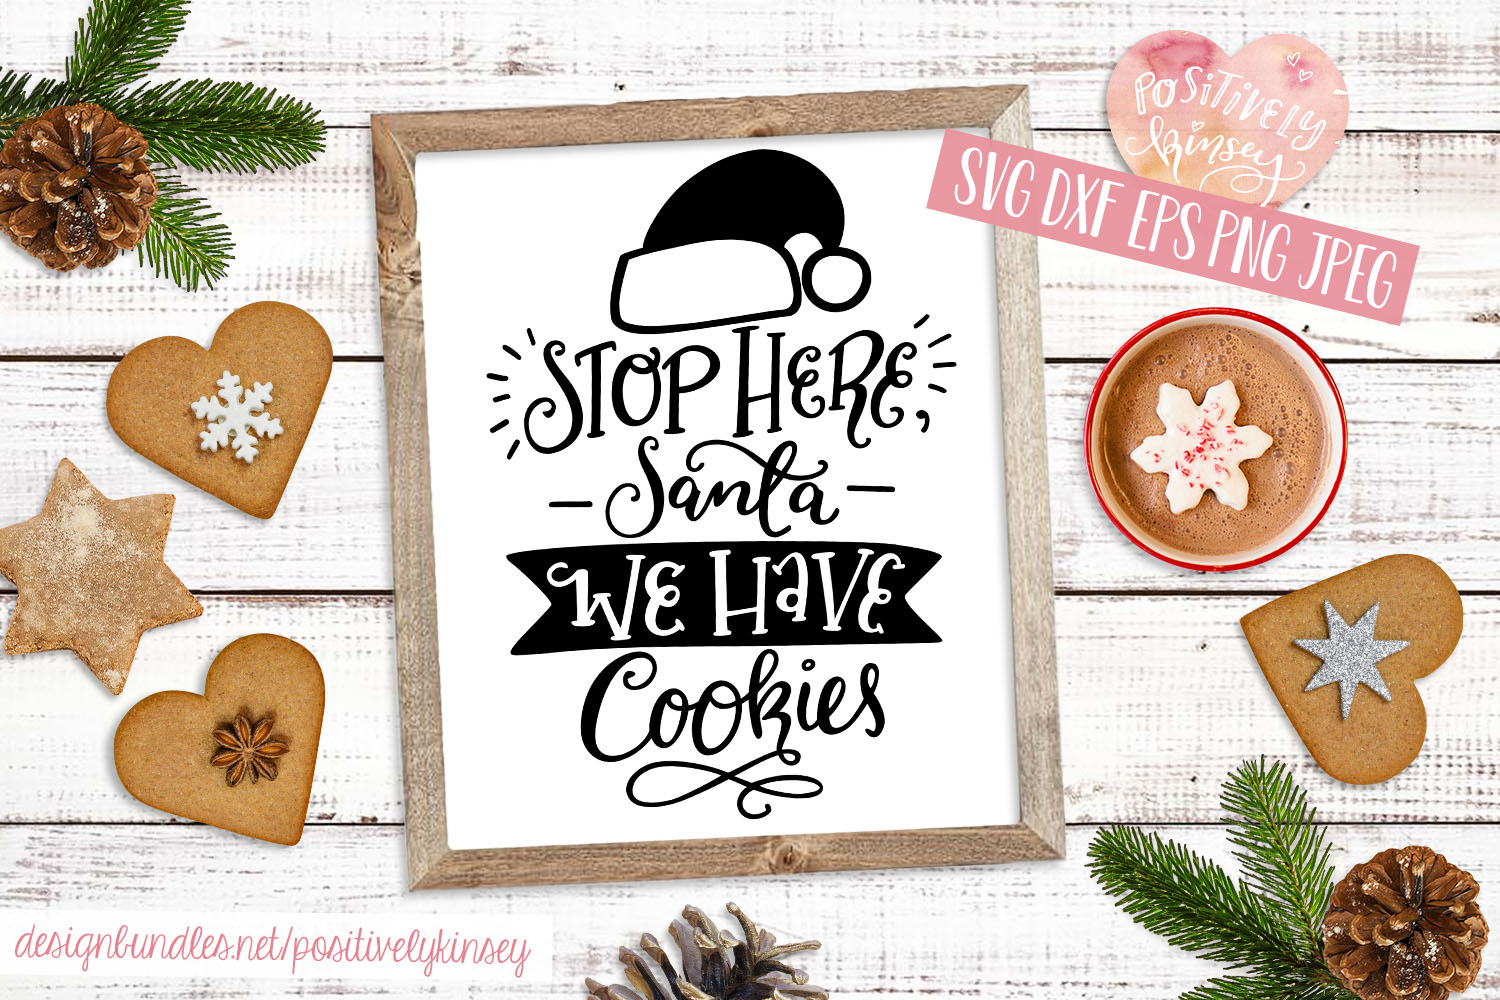 Stop Here Santa We Have Cookies SVG, Christmas Sign SVG example image 1